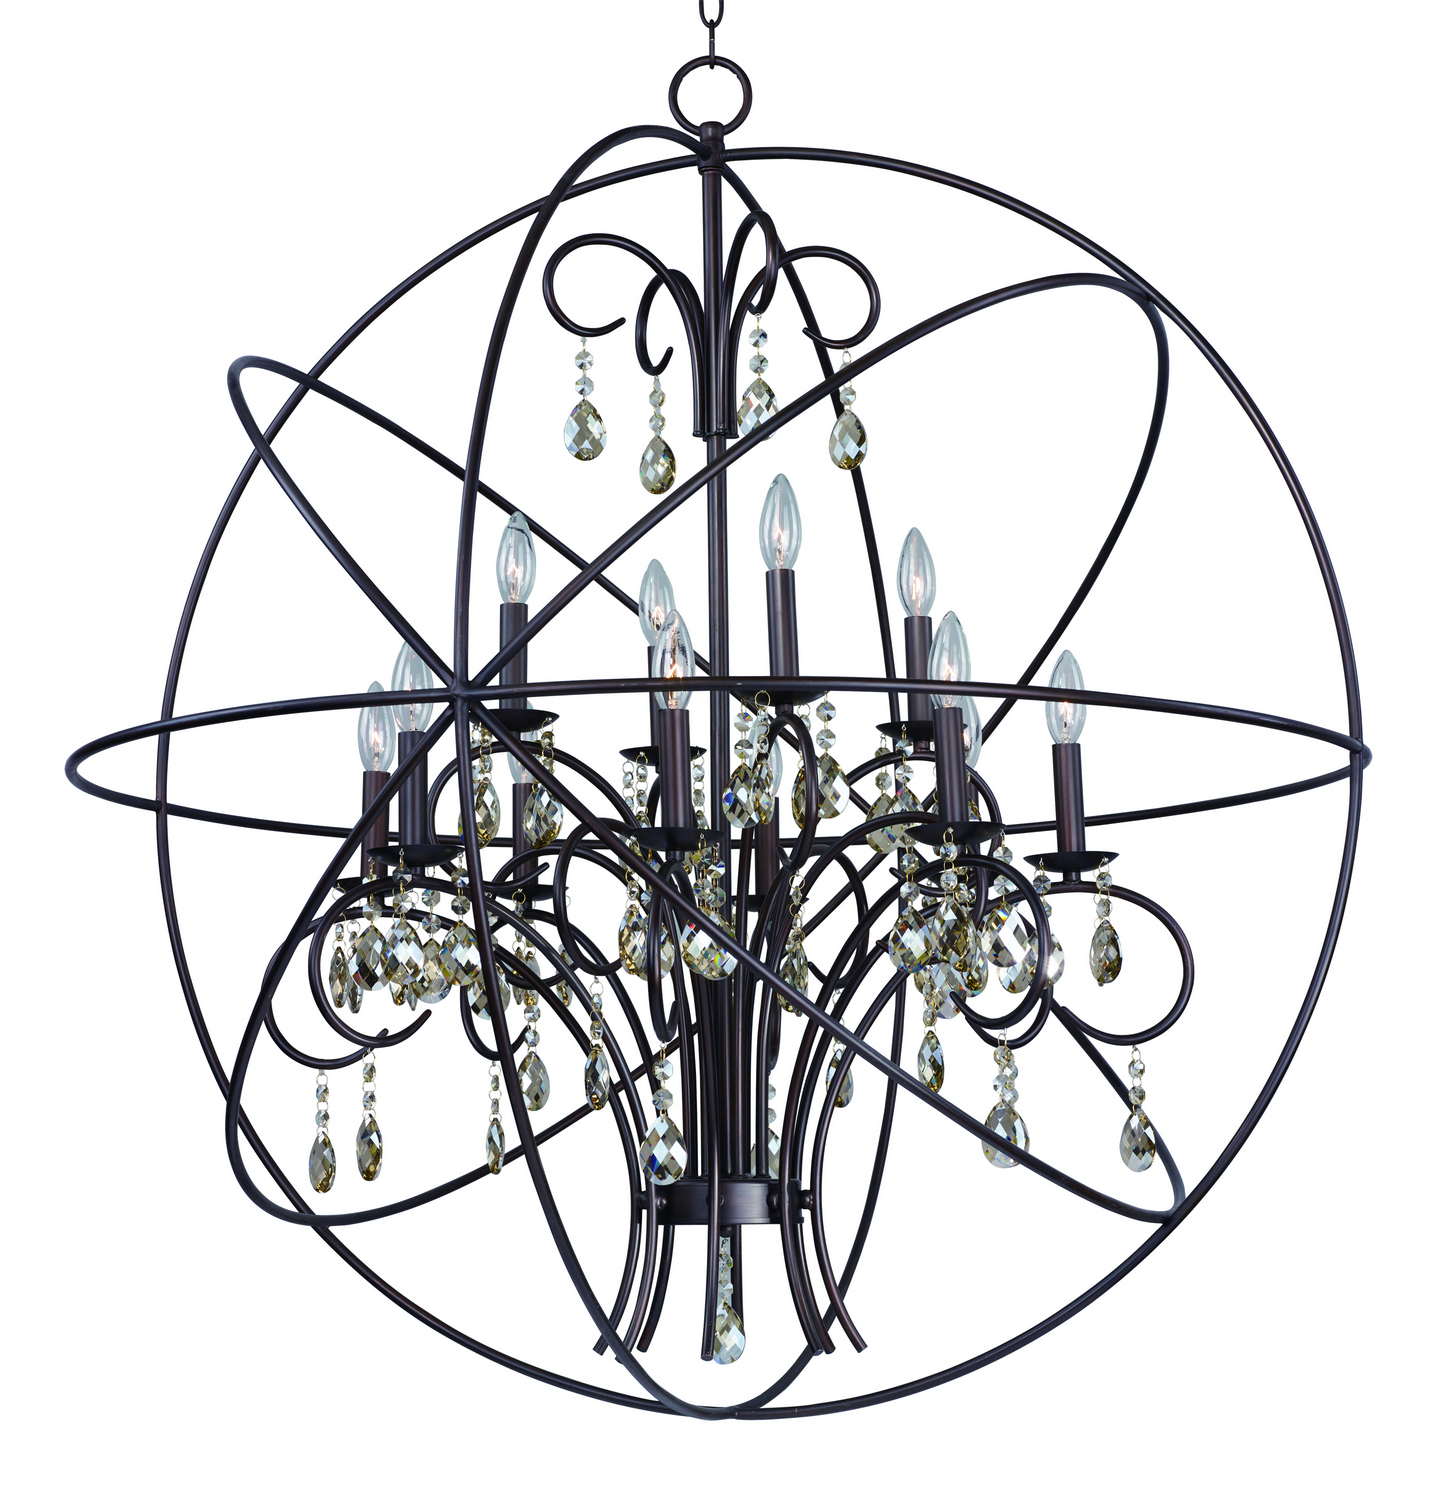 12 Light Pendant from the Orbit collection by Maxim 25147OI